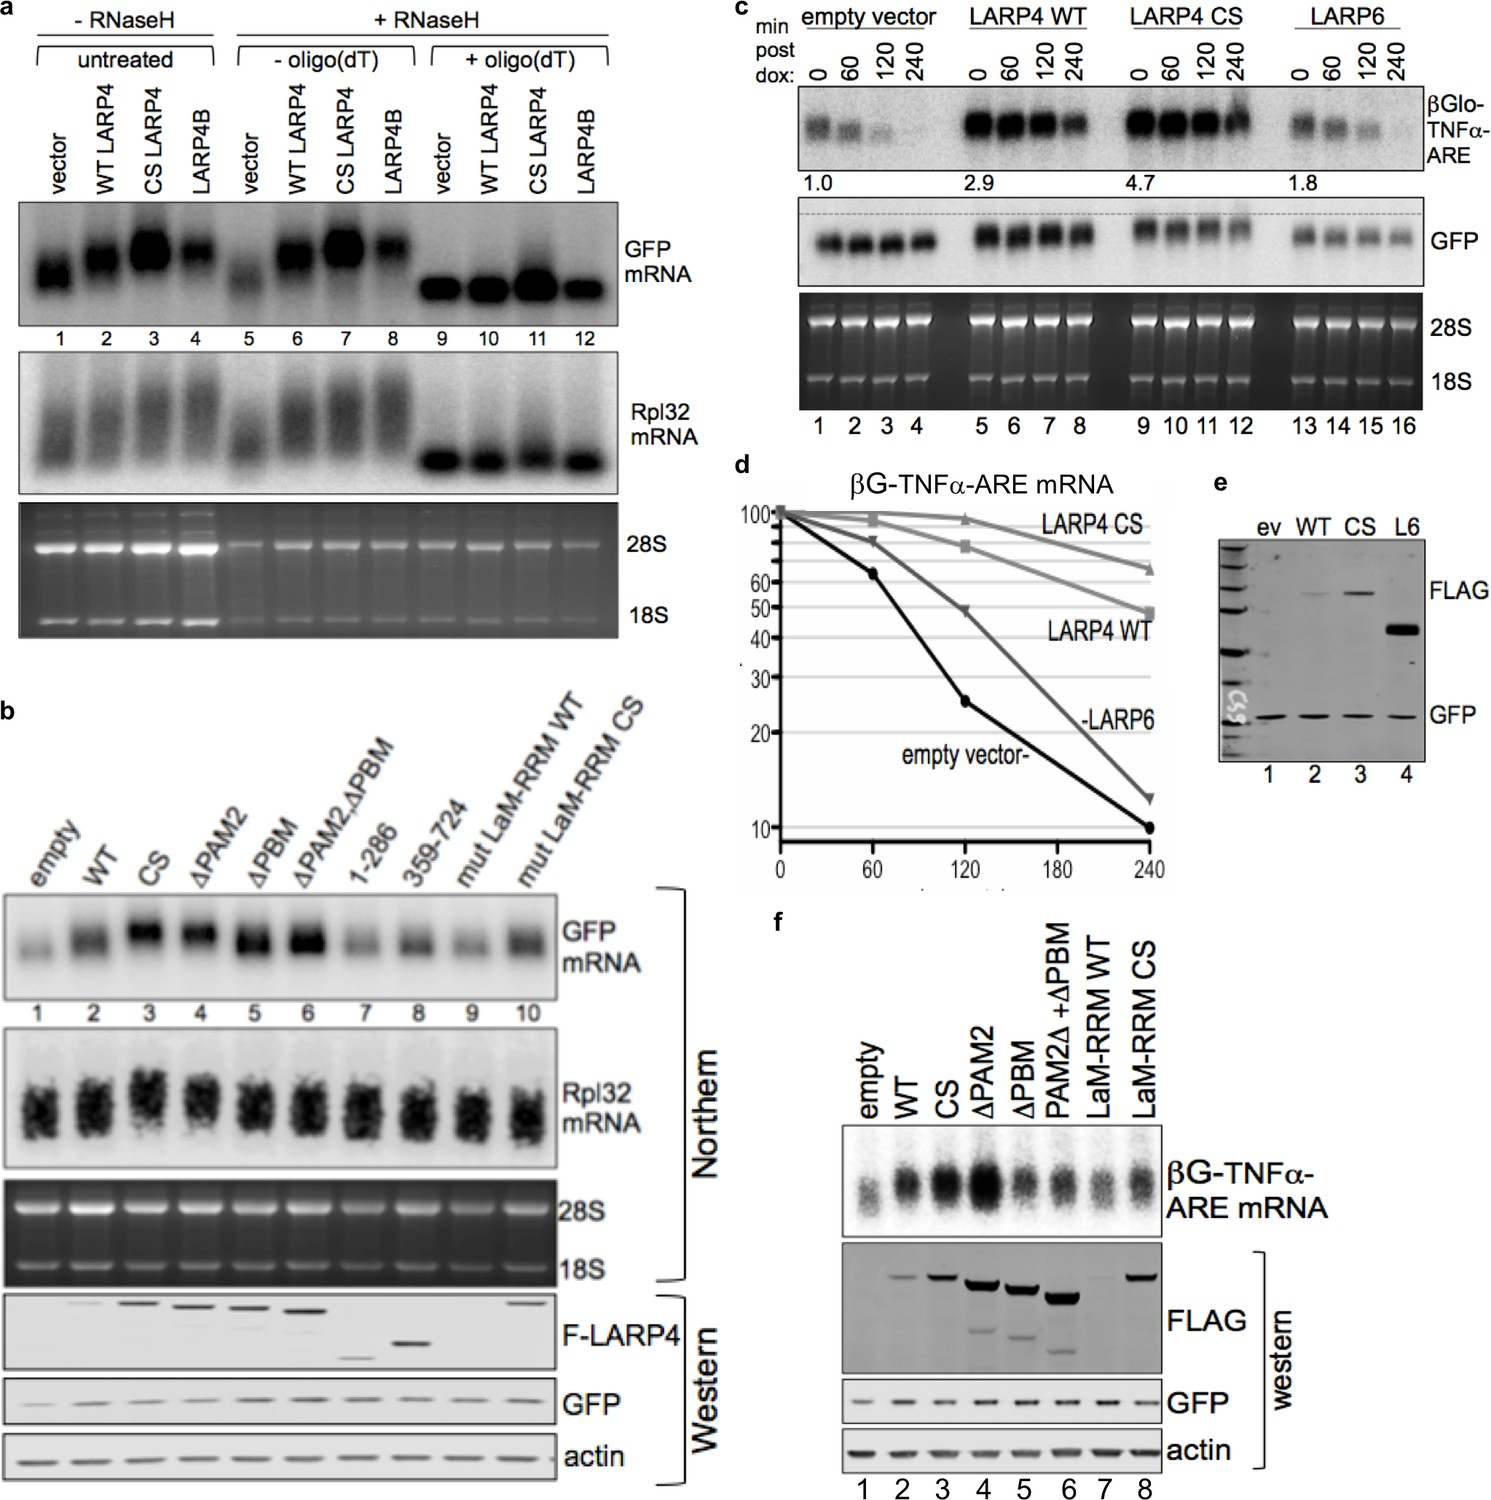 Larp4 Mrna Codon Trna Match Contributes To Activity For 365 Gtc Wiring Diagram Crd Mediated Increase In Leads Heterologous 3 Pat Lengthening And Stabilization Dependent On Its Pabp Rna Interaction Domains